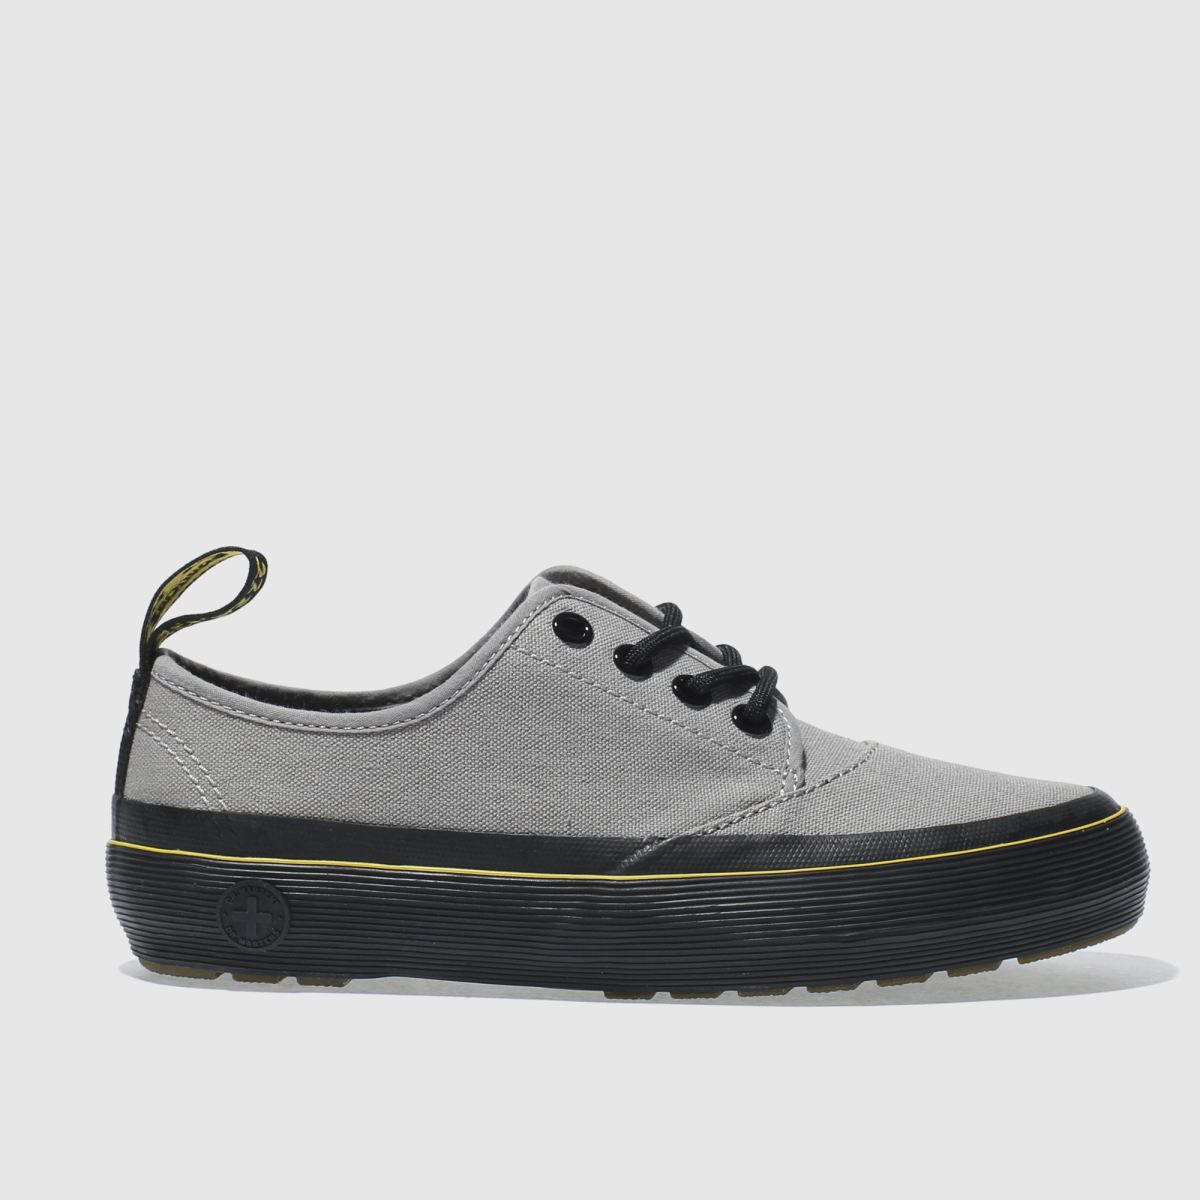 dr martens grey jacy 4 eye flat shoes